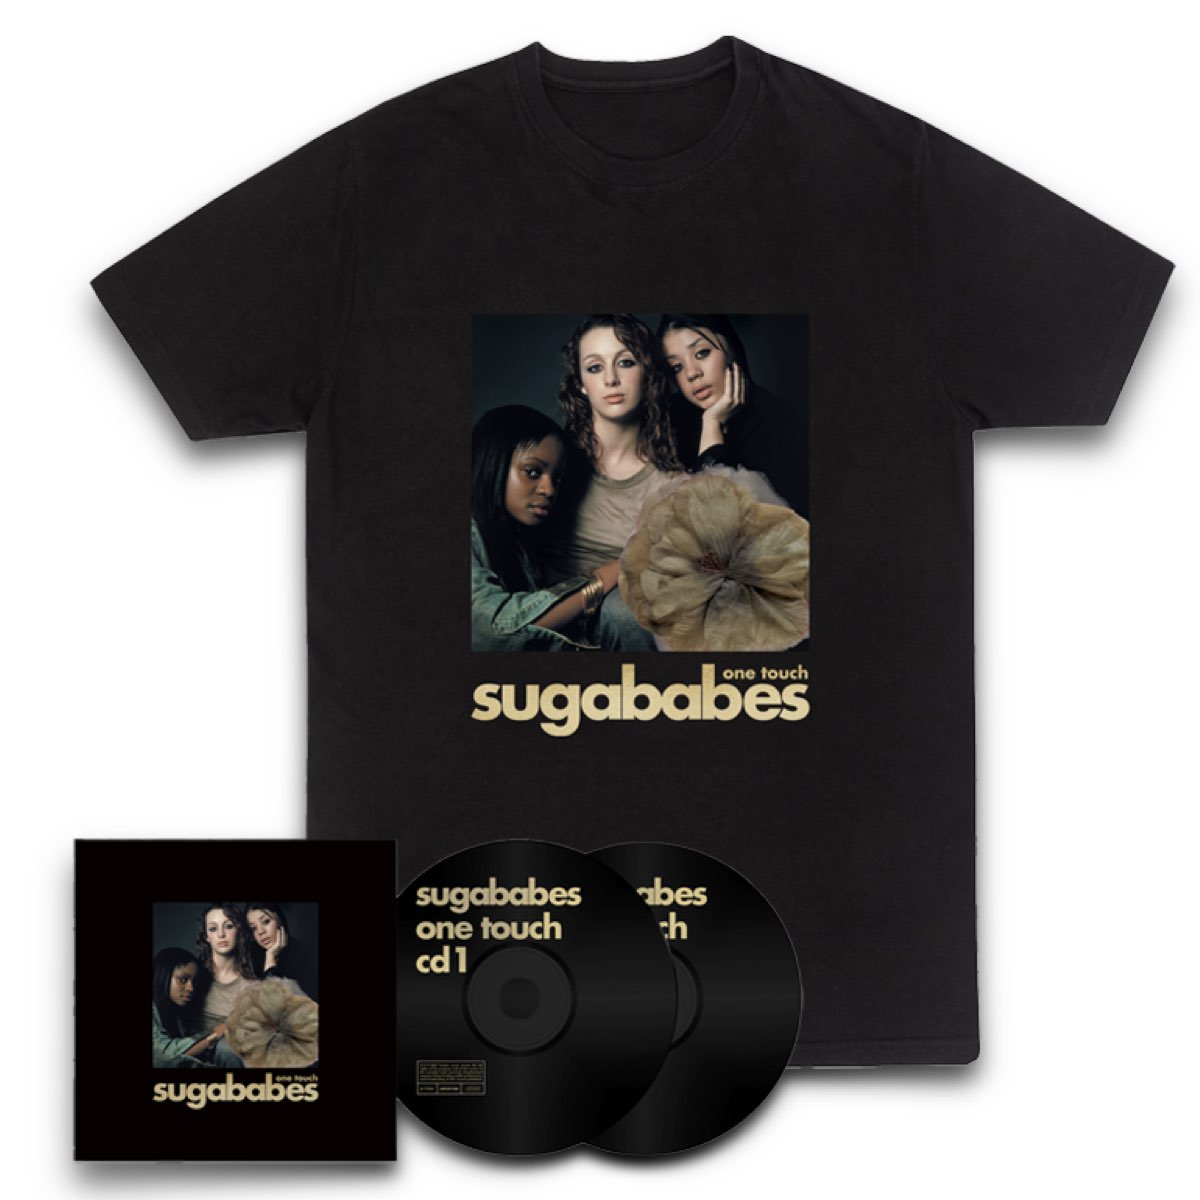 Sugababes - One Touch: Remastered 2CD + Overload [Signed & Numbered] CD Single + Album T-Shirt